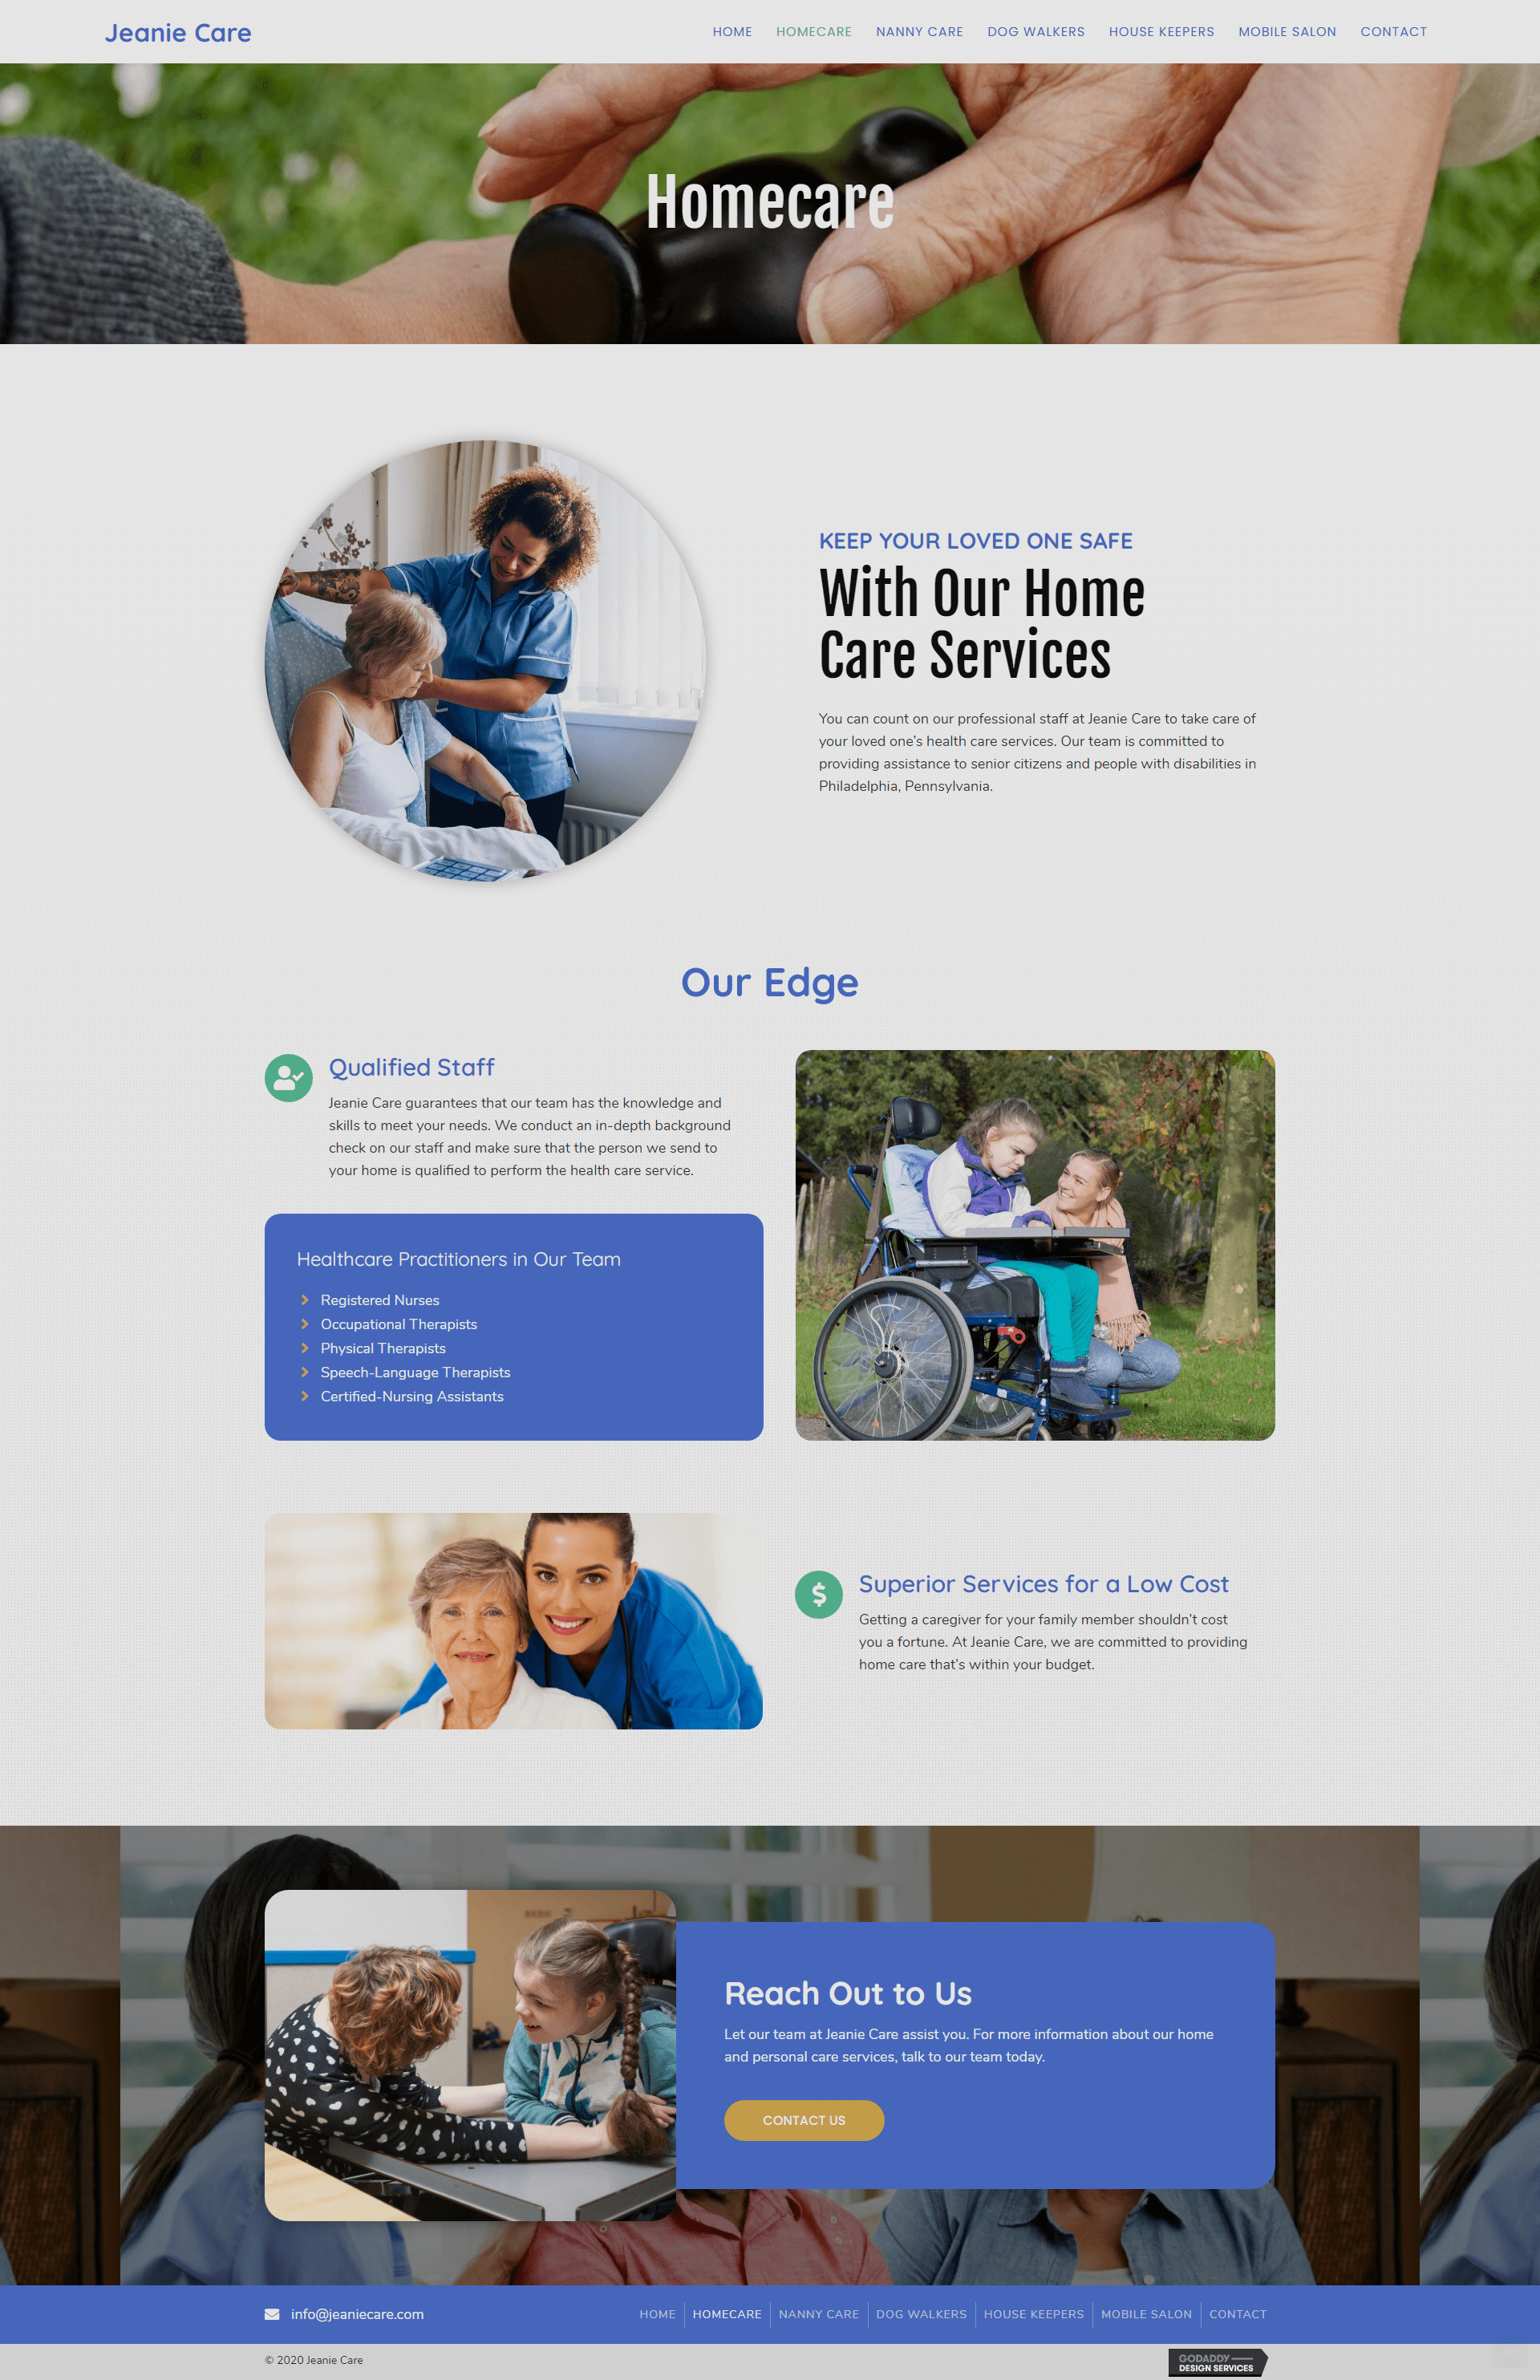 Jeanie Care Home Care page